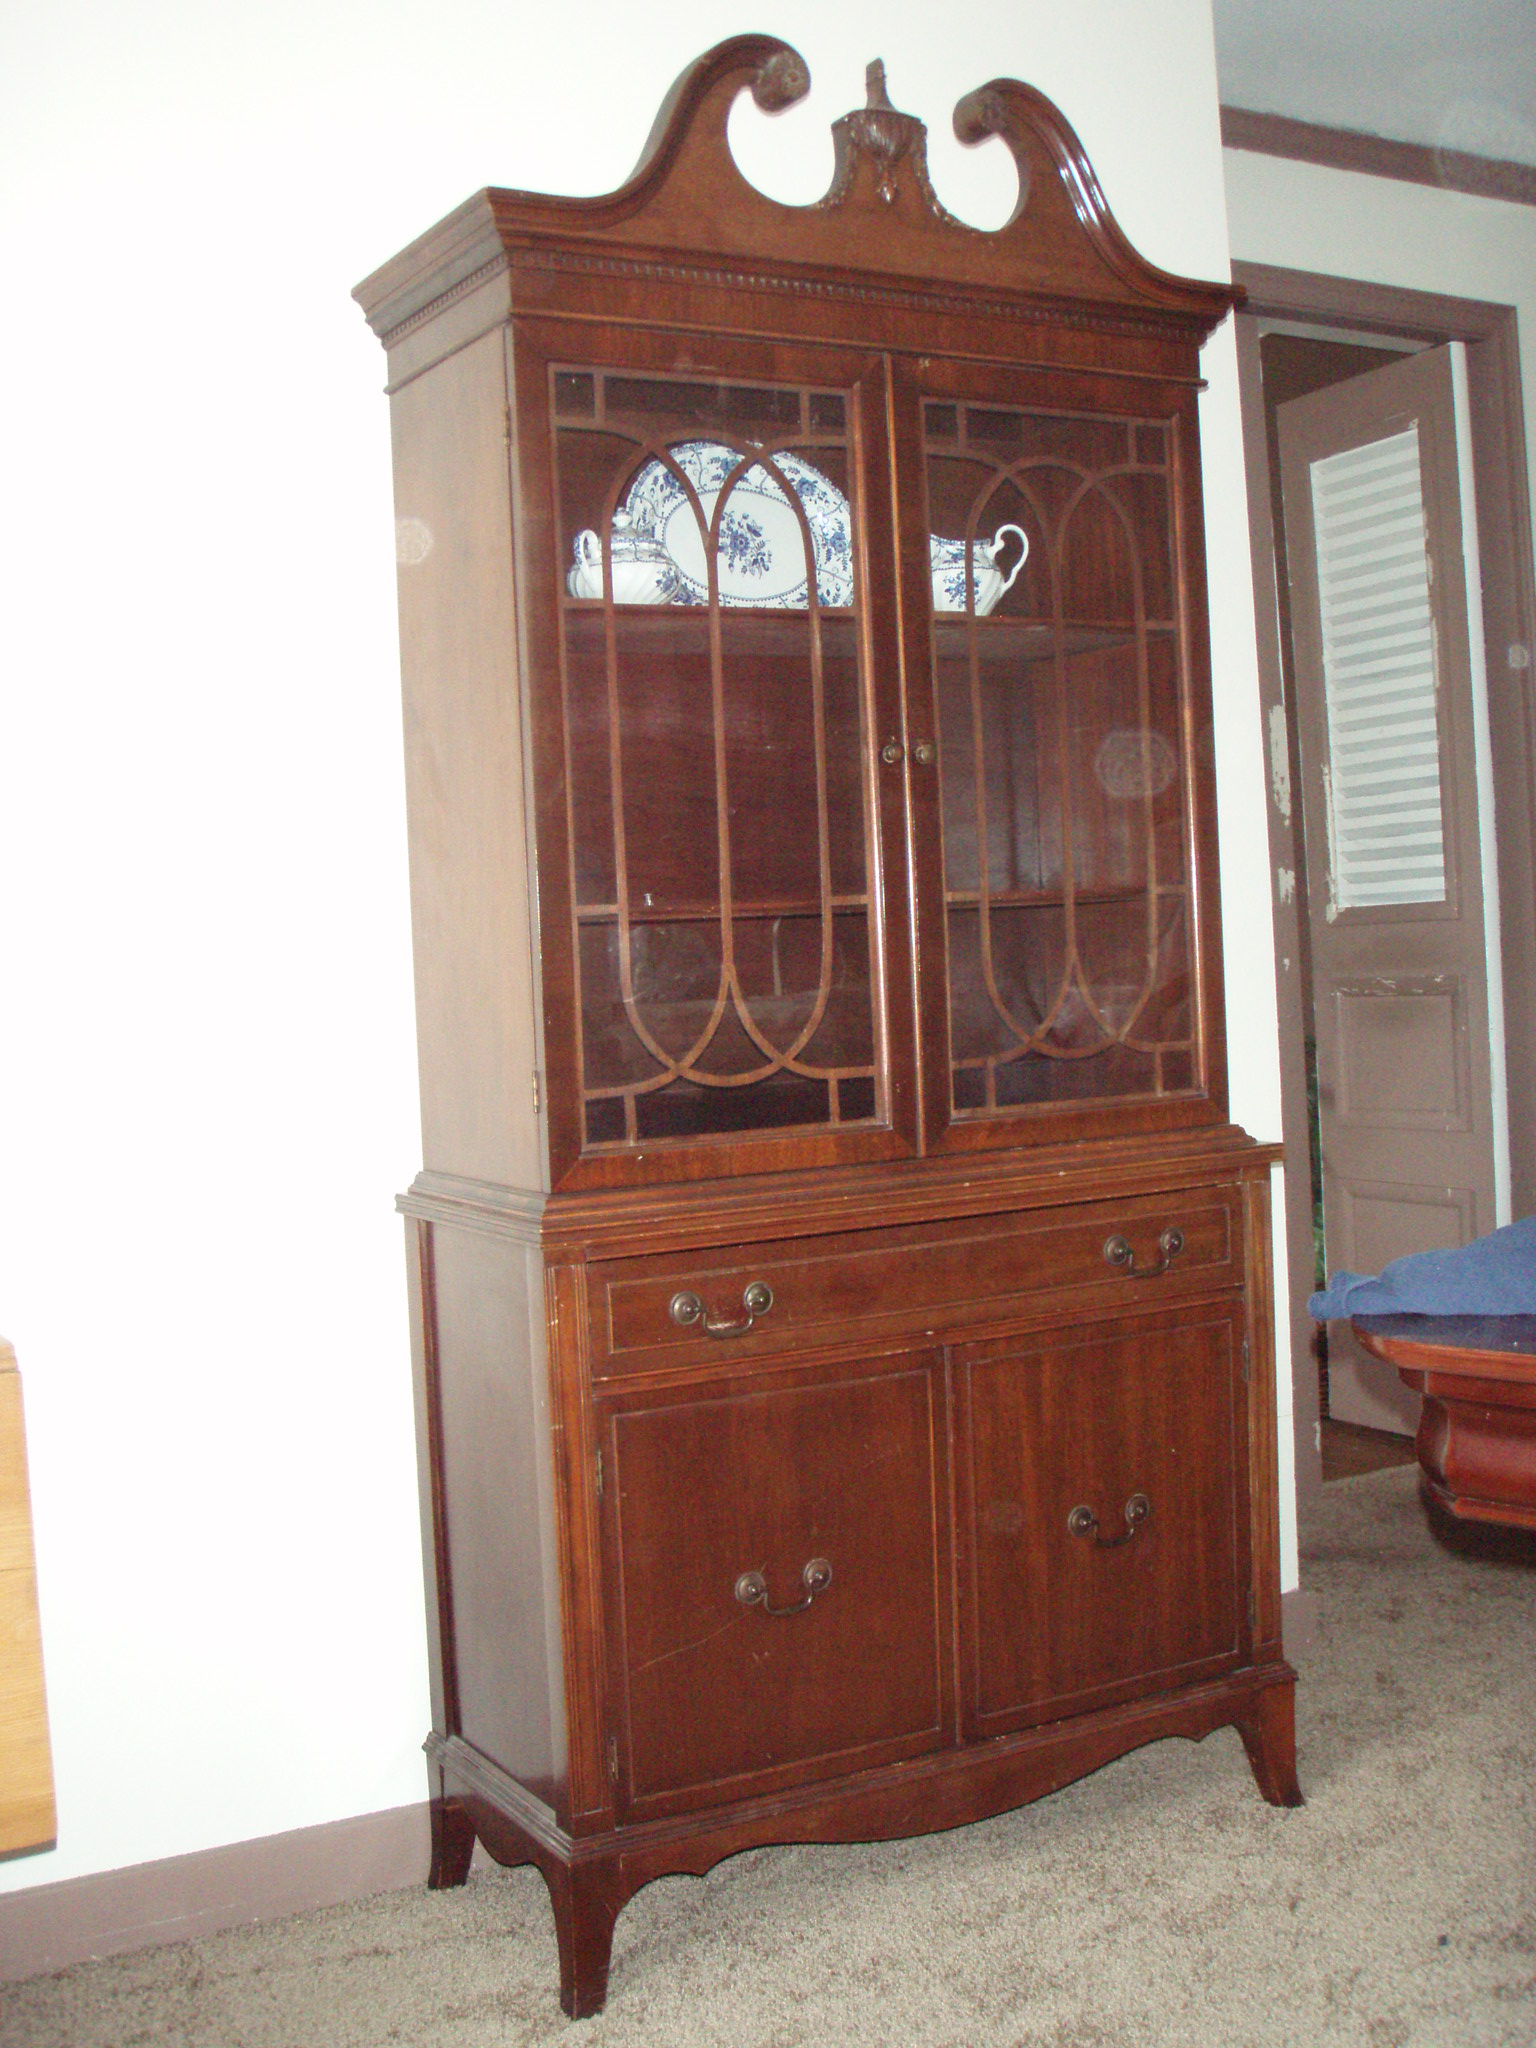 Vintage Mahogany China Cabinet For Sale Antiquescom  : ori588412786501241138724P1010002 from www.antiques.com size 1536 x 2048 jpeg 704kB